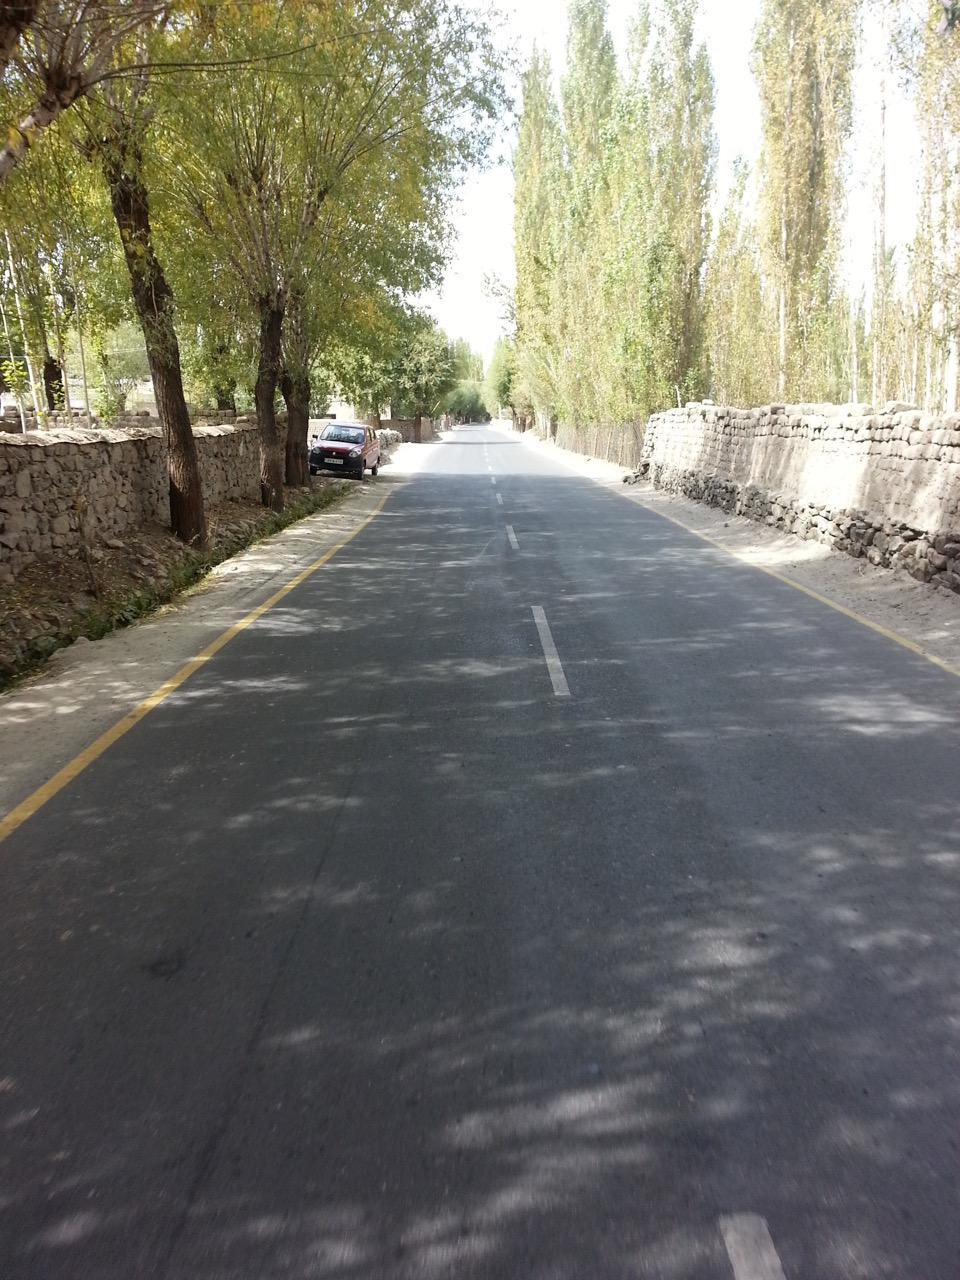 Welcome to Leh, finally 20km away.